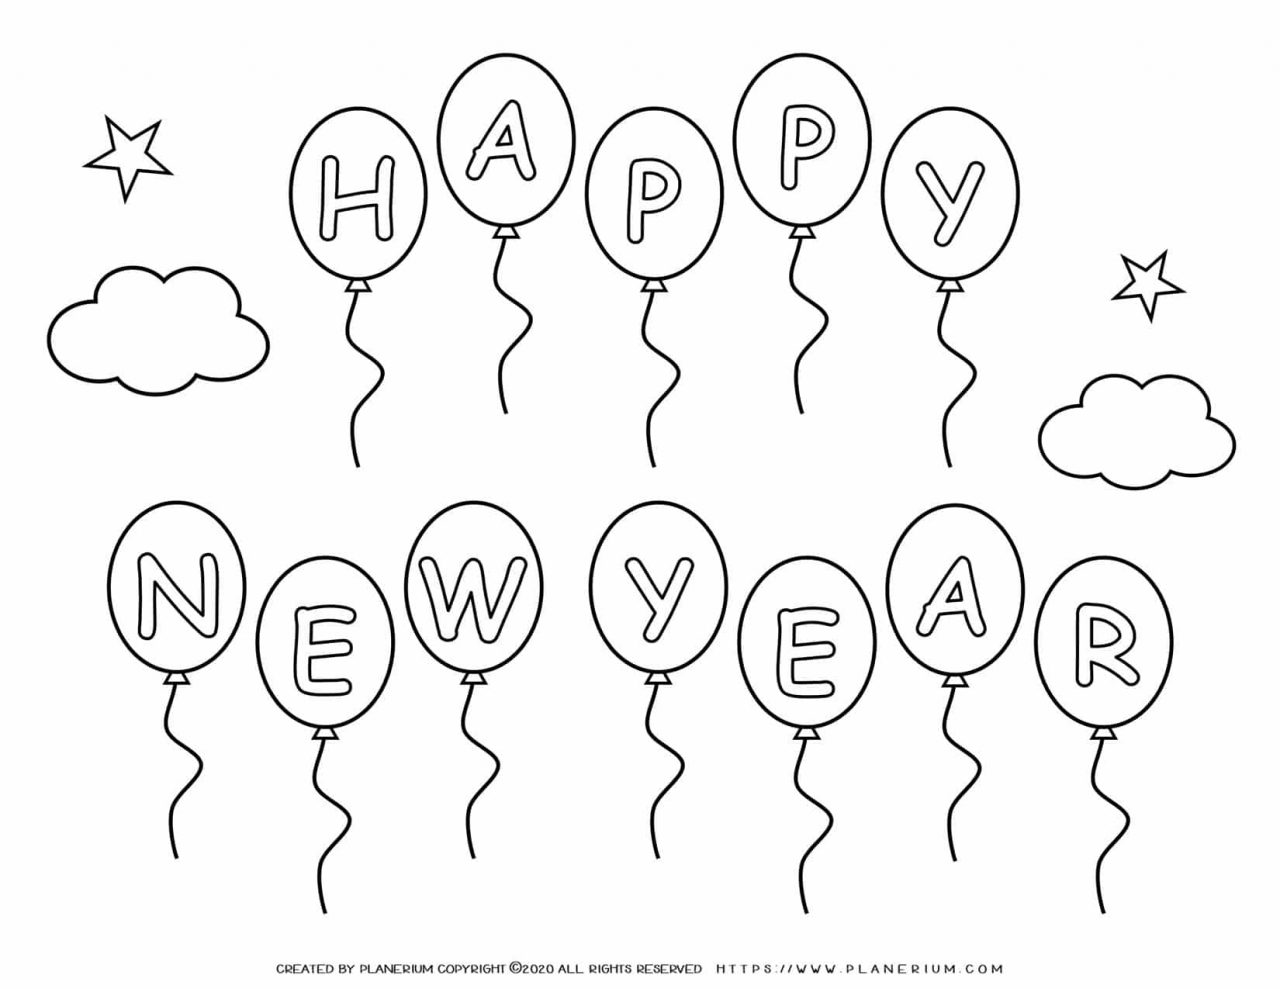 New Year Coloring Pages - Happy New Year Balloons | Planerium